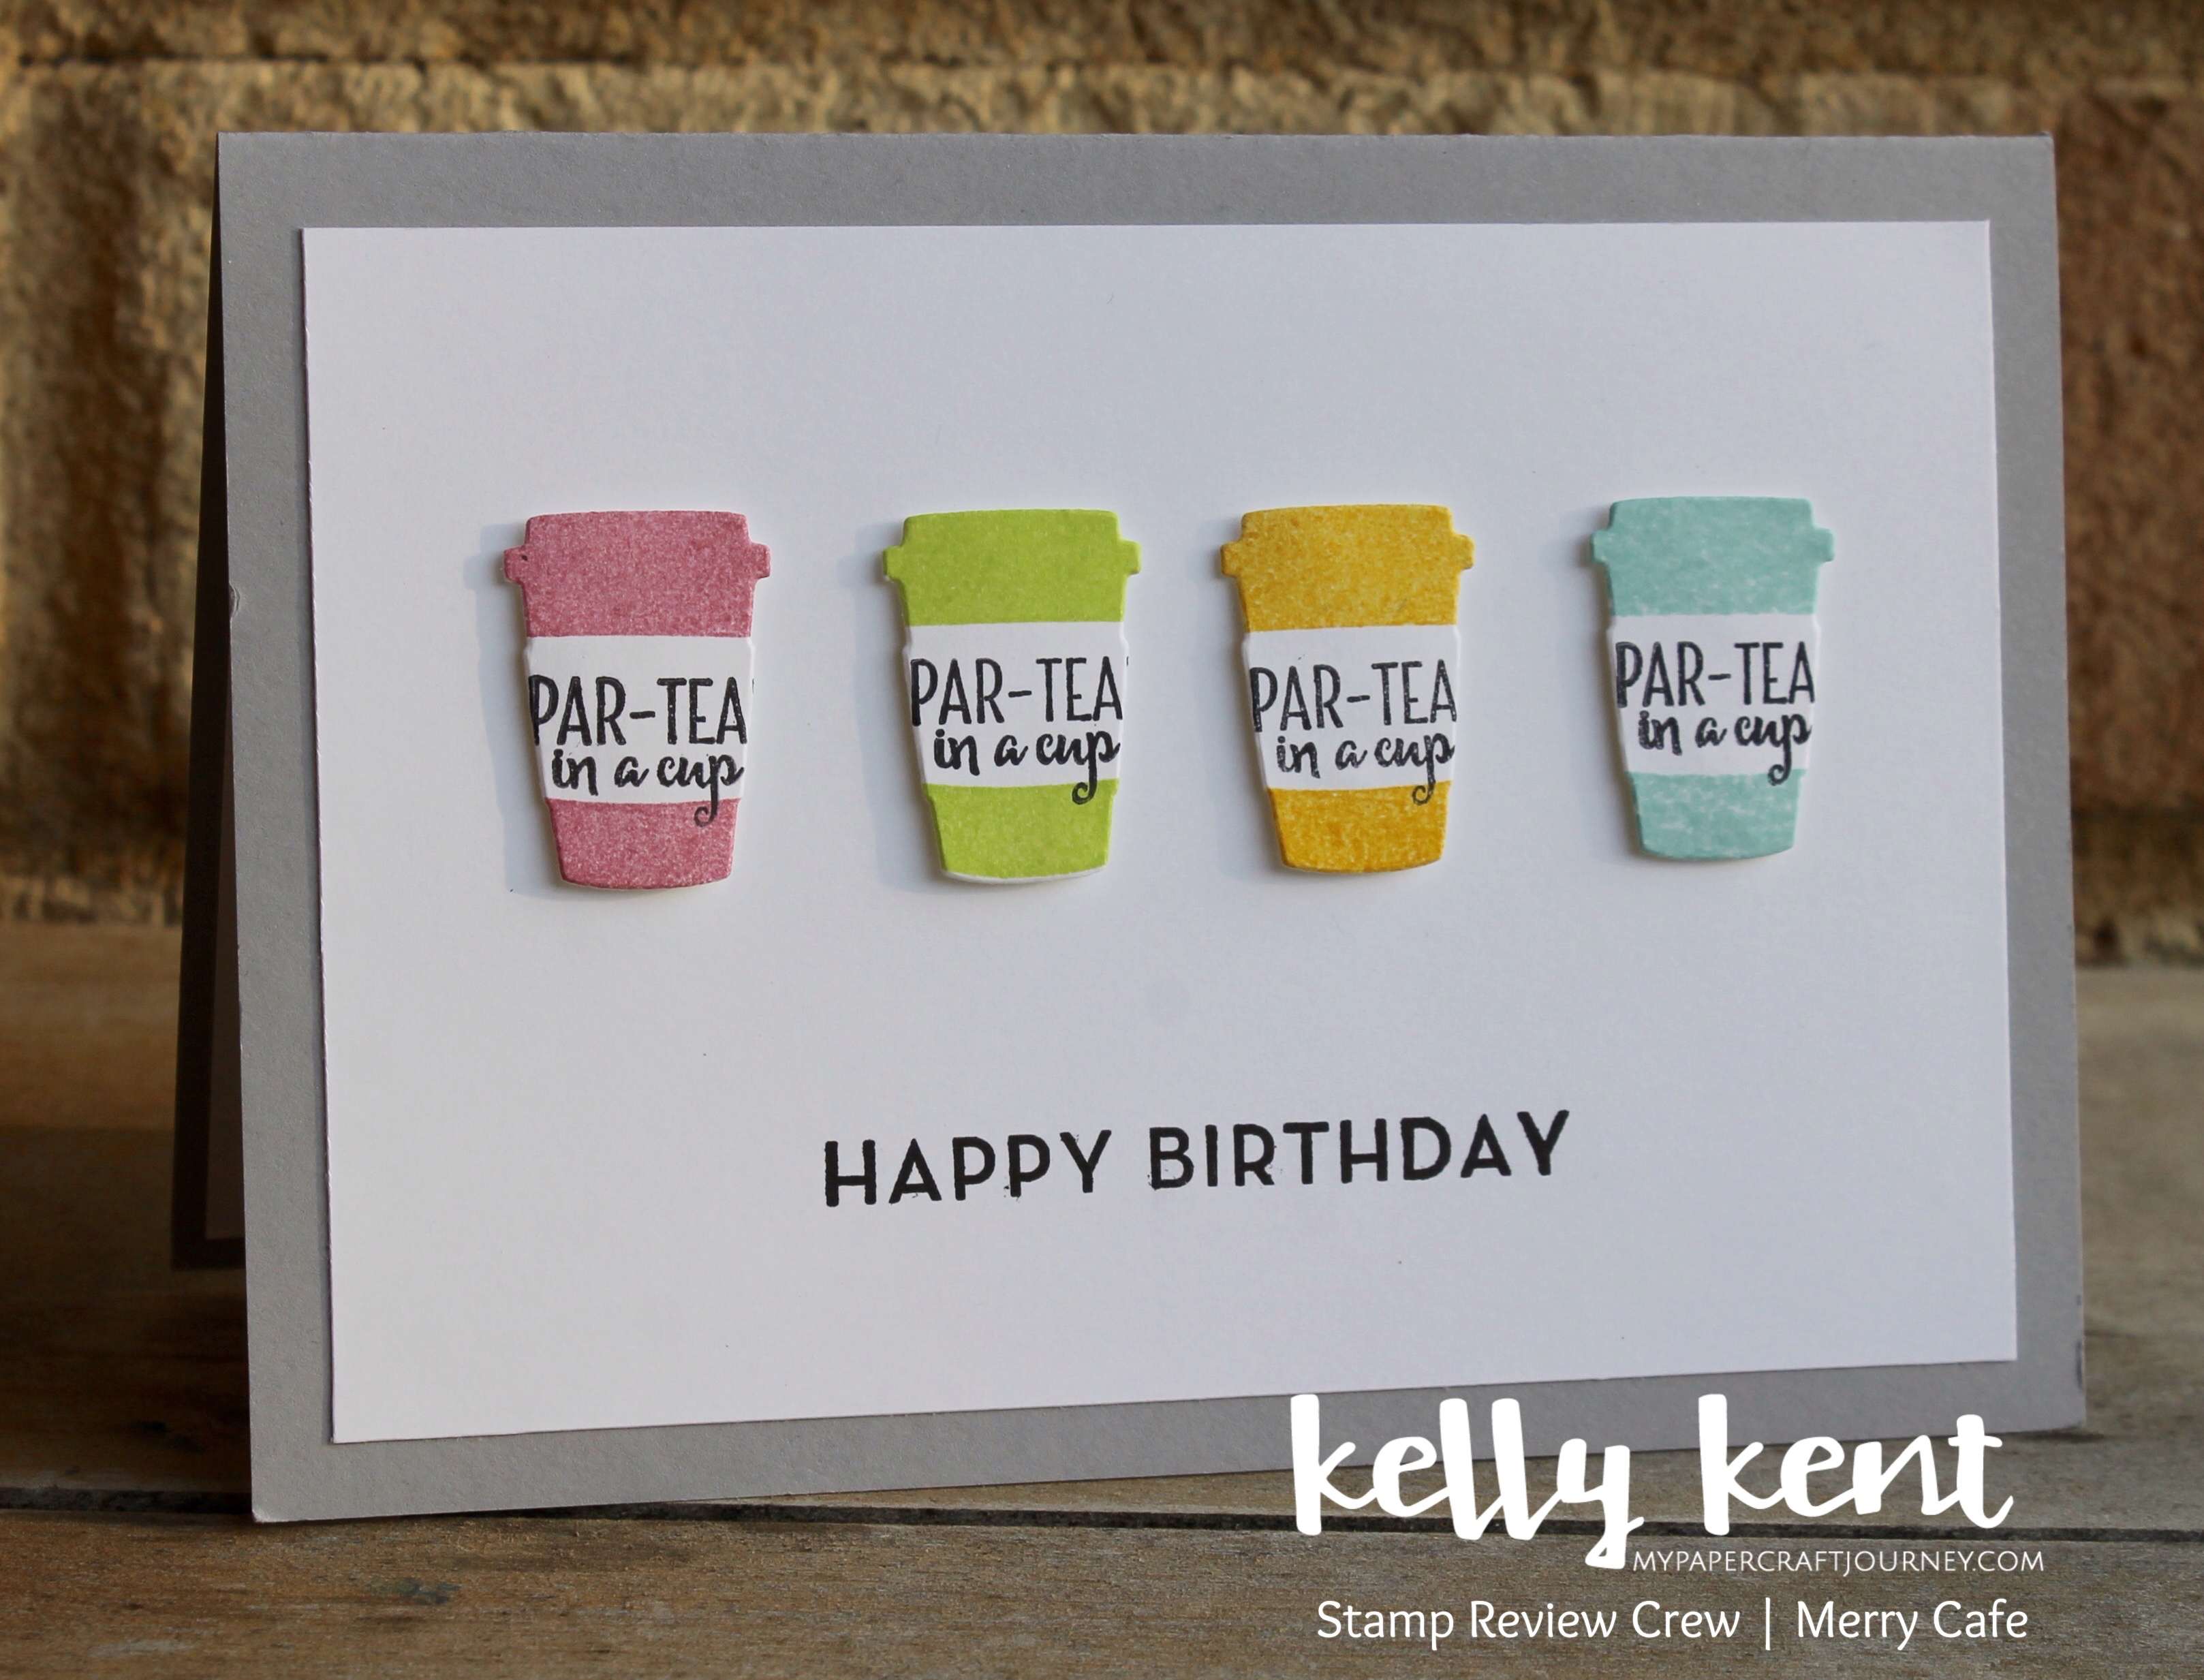 Stamp Review Crew Merry Cafe | kelly kent